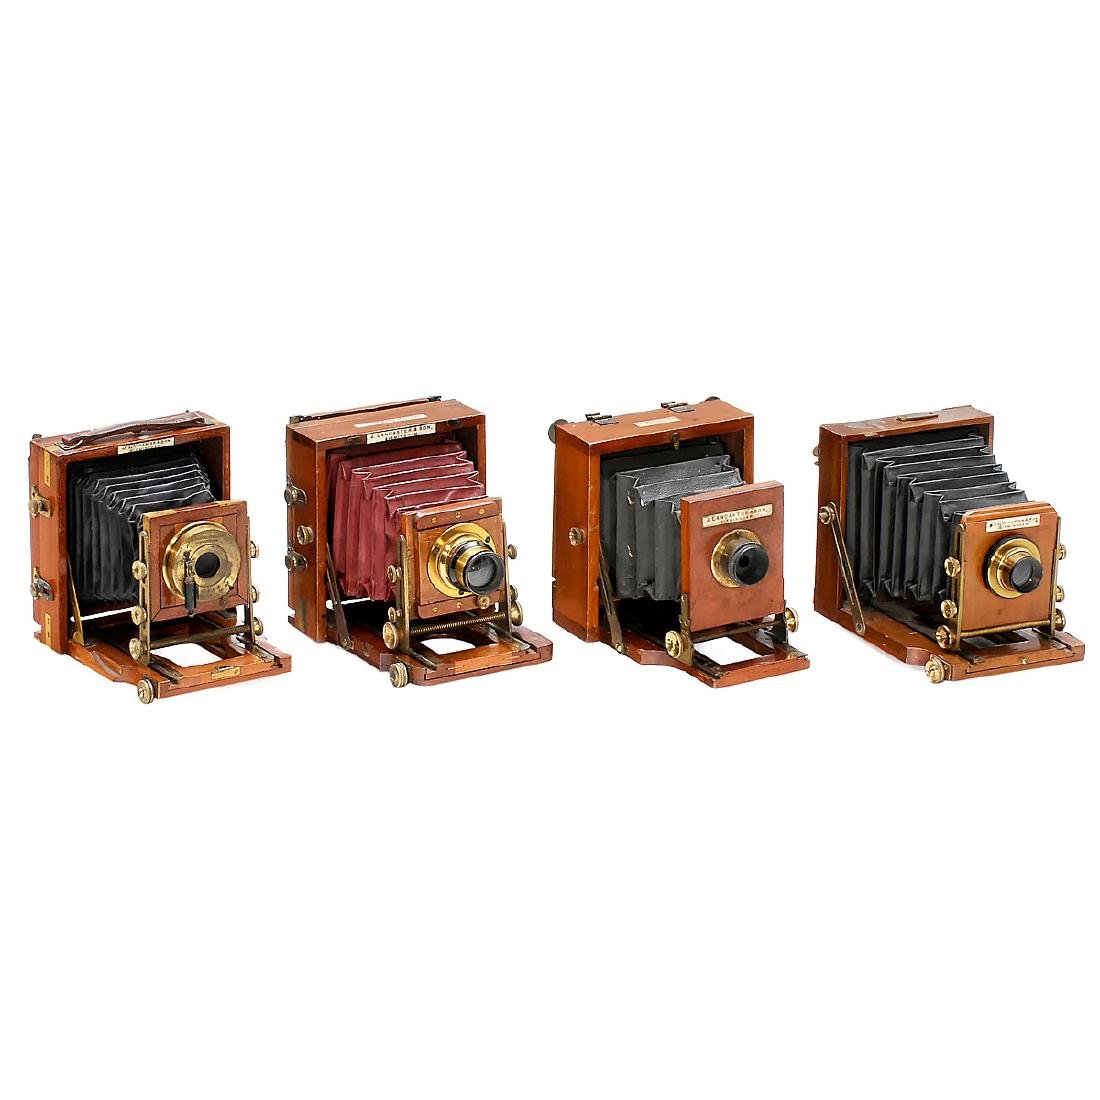 4 Field Cameras by Lancaster & Son